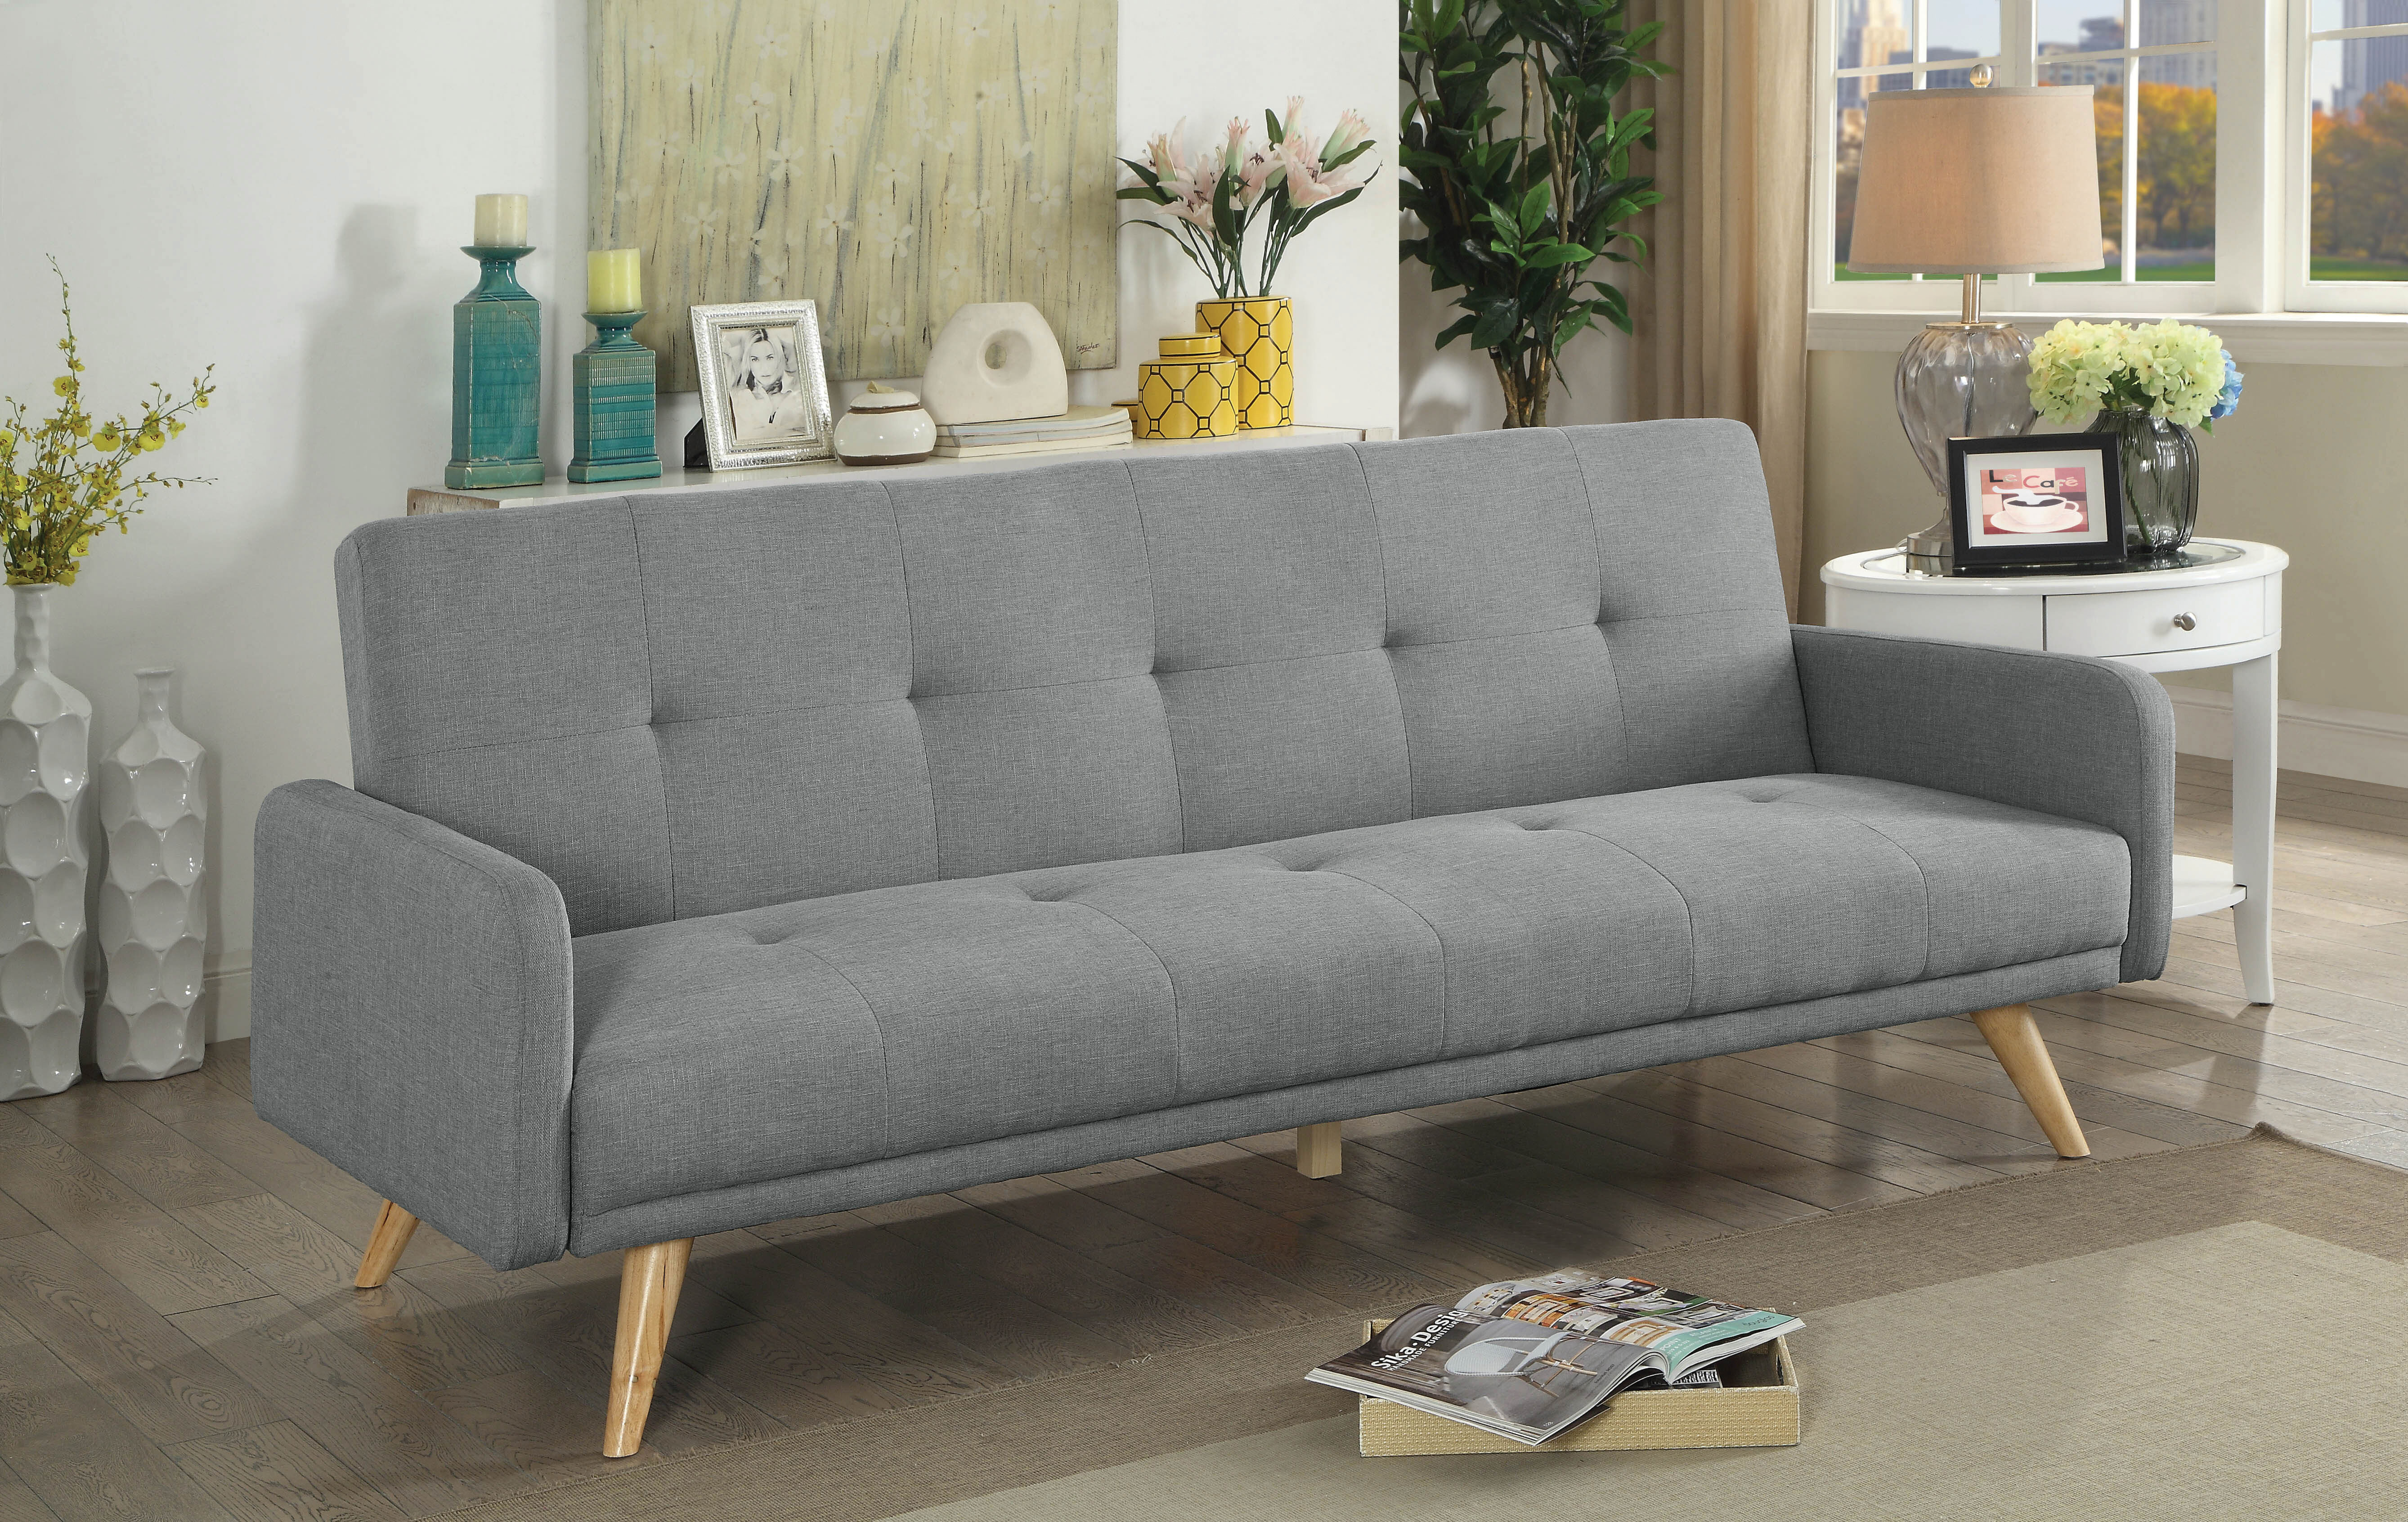 modern futon sofa bed. Modern Futon Sofa Bed